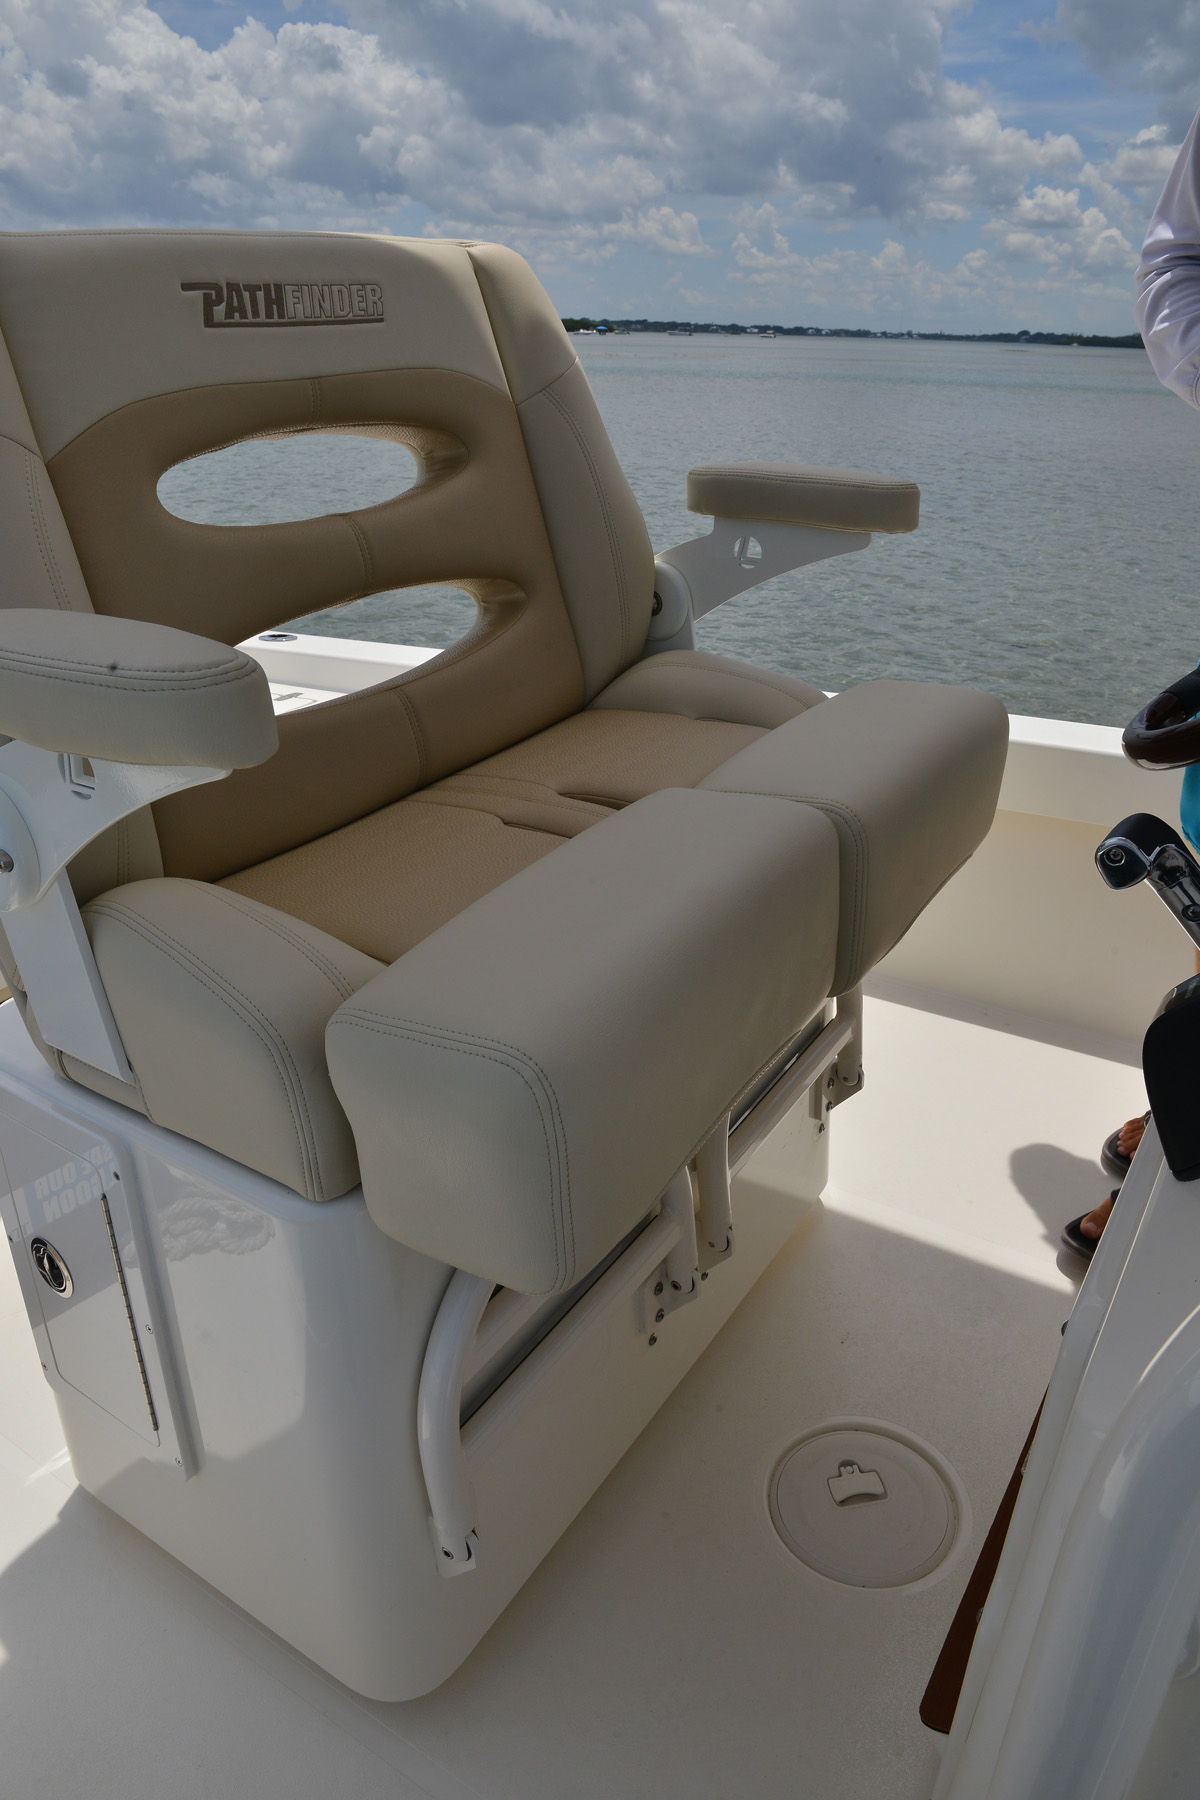 Boat captains chairs - The Luxurious Helm Seat Has Rotating Bolsters That Allow The Captain And Passenger To Stand Or Sit Independently